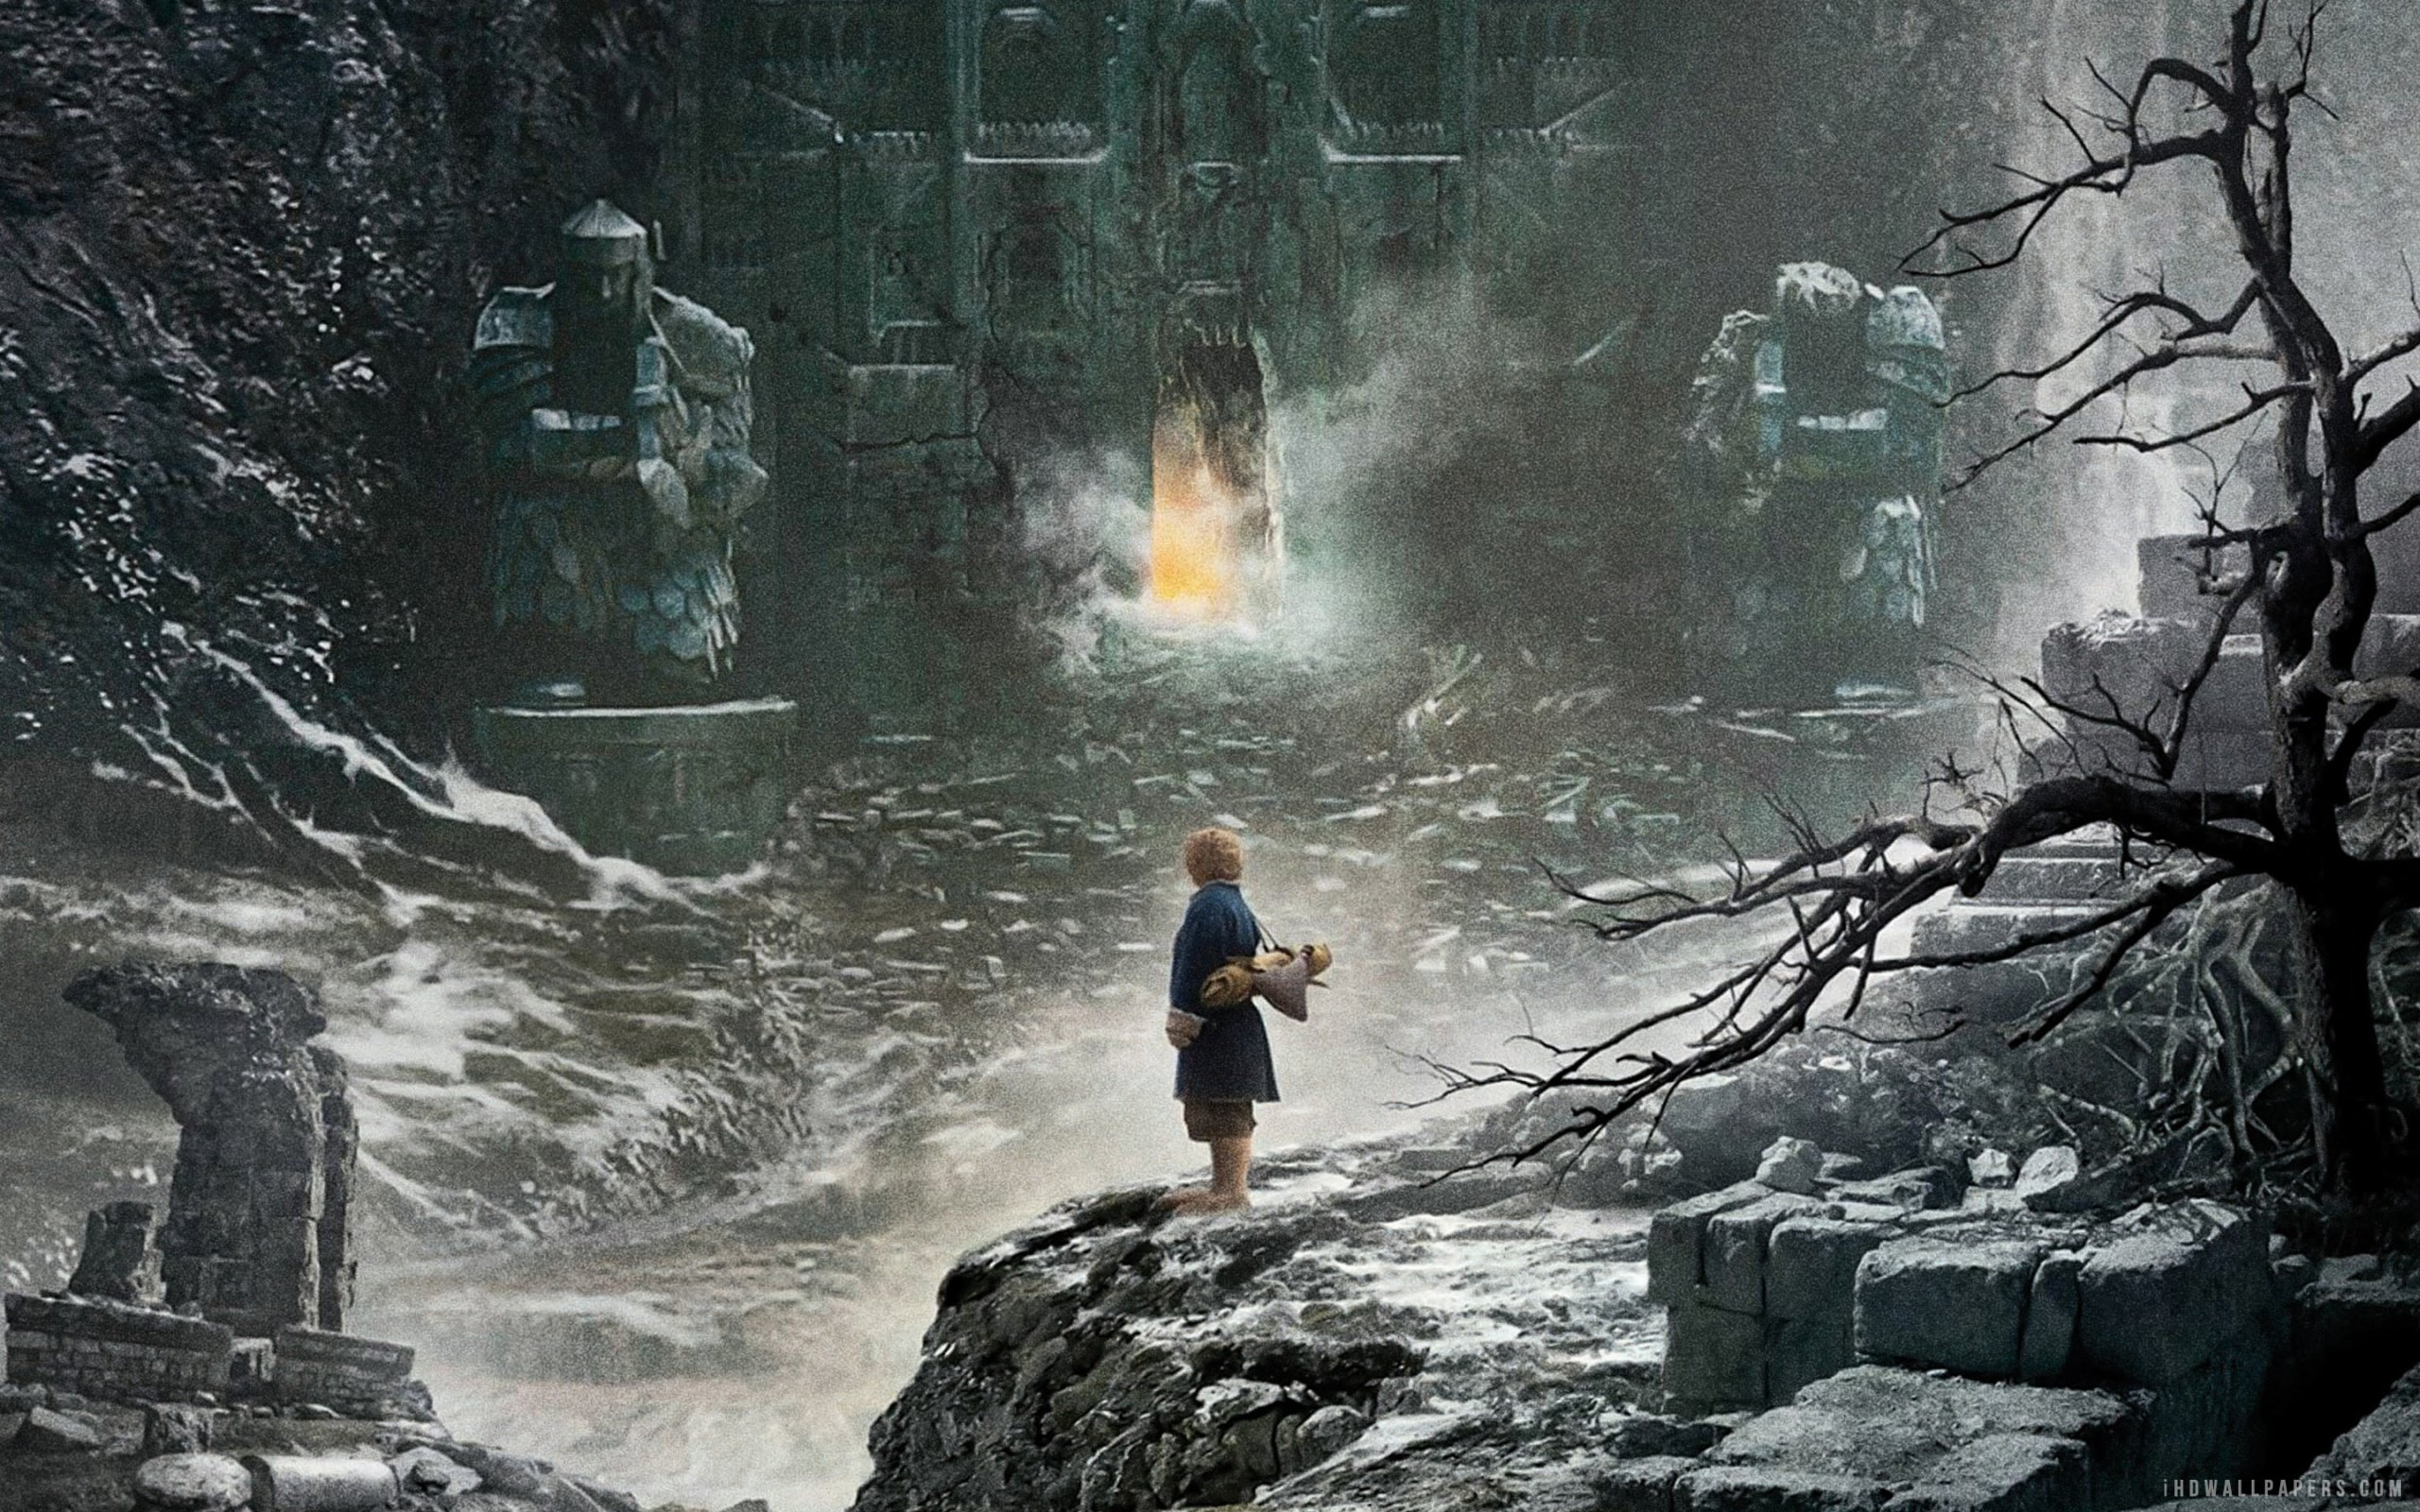 The Hobbit The Desolation of Smaug Wallpaper 2560x1600